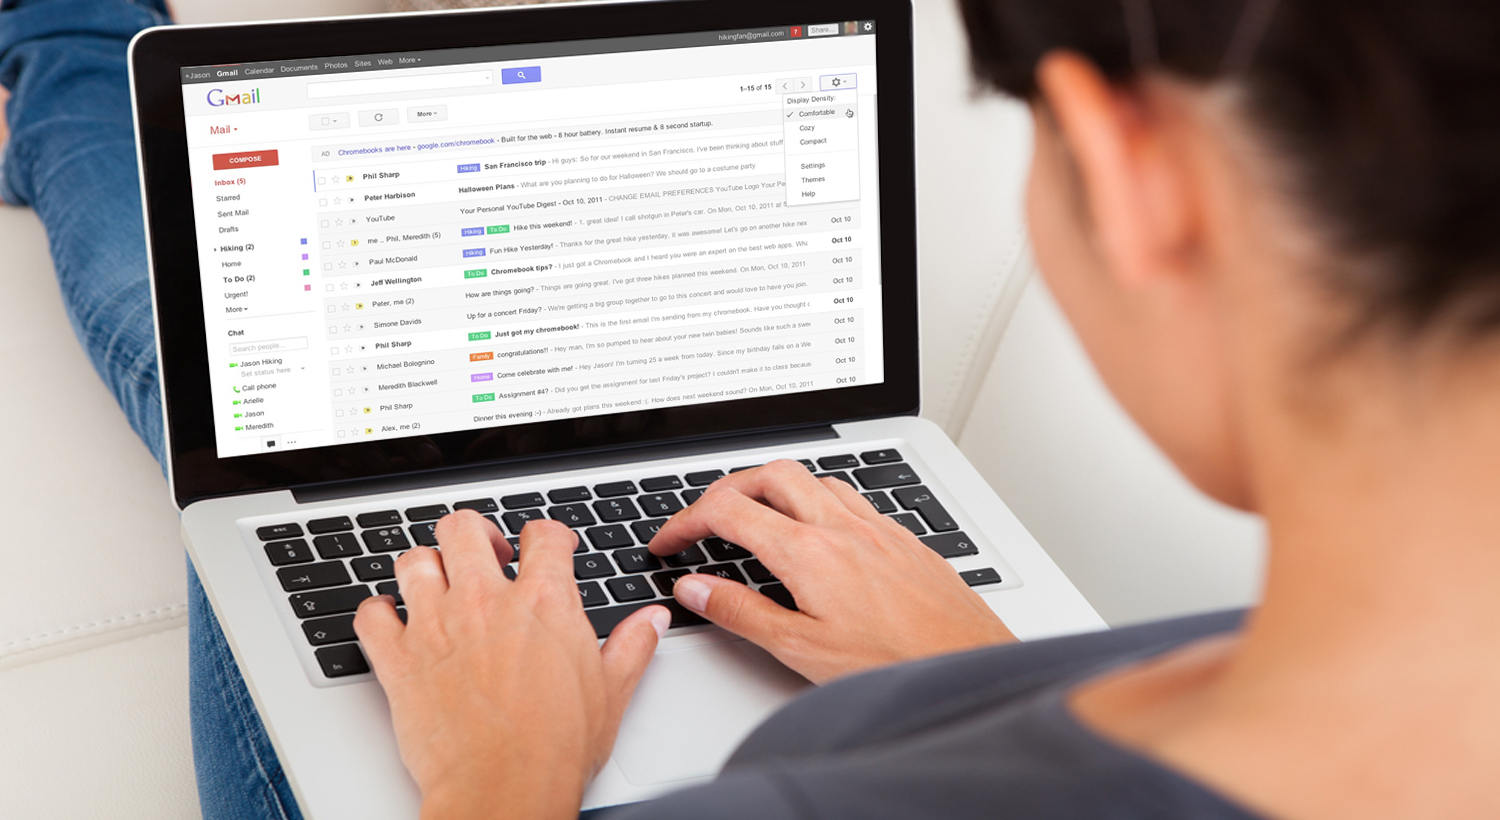 5 tips to build your email marketing list